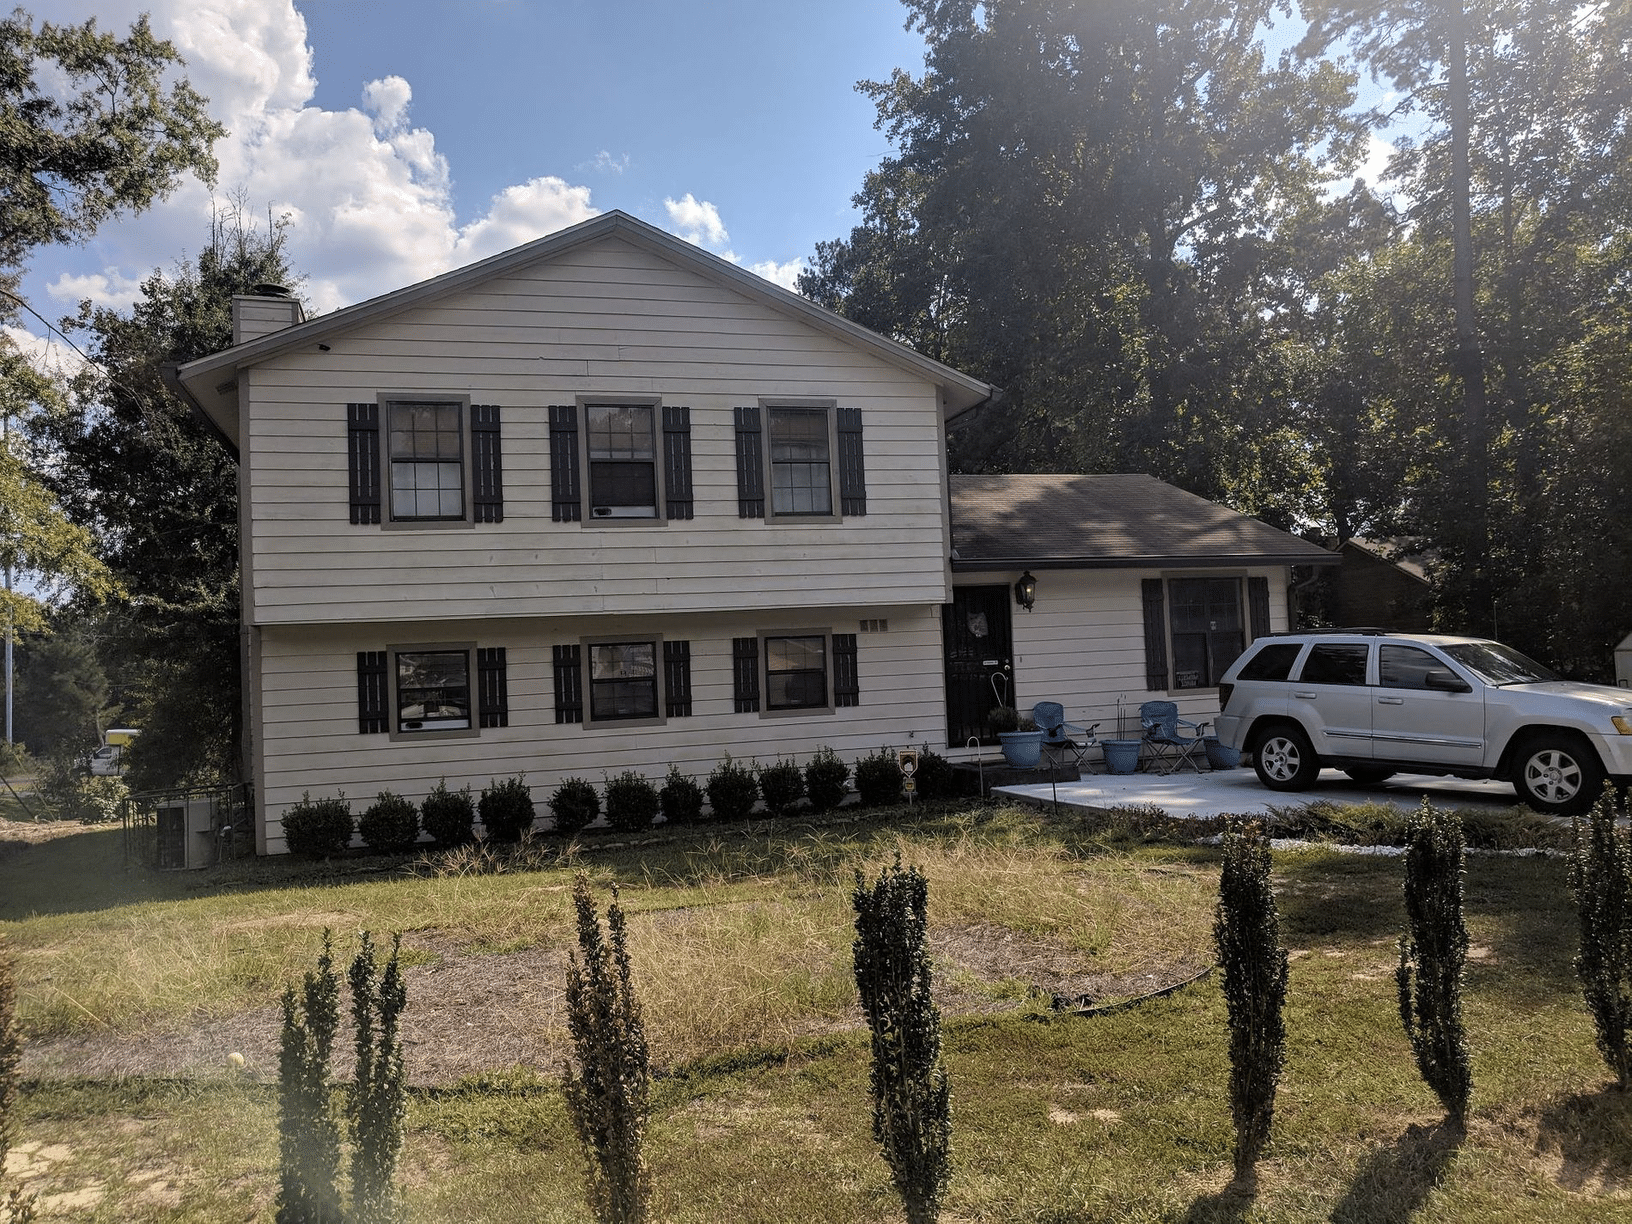 Gutter Replacement in Fairburn, GA - After Photo